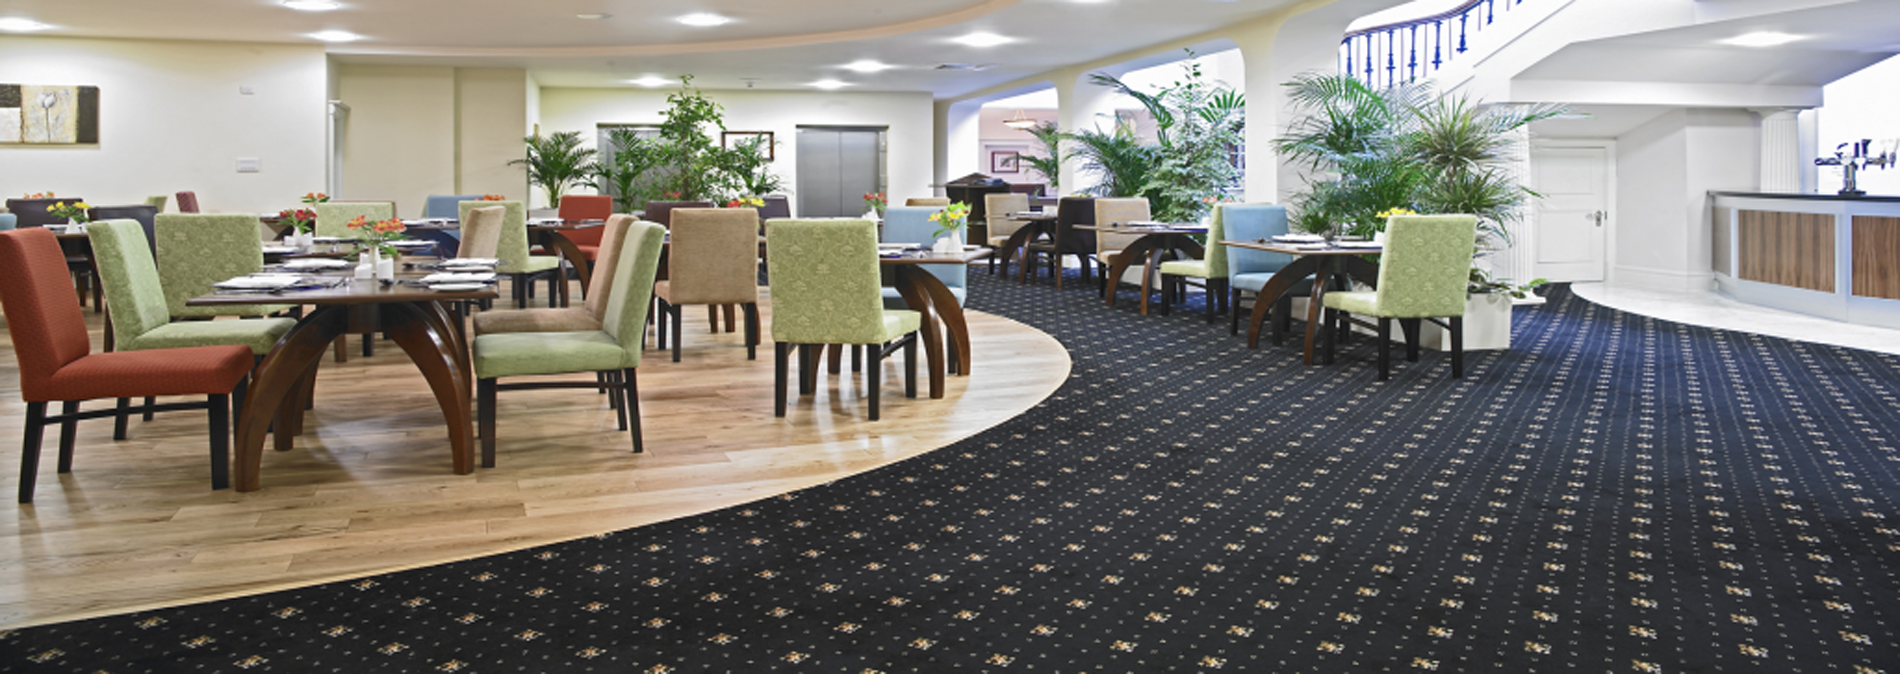 Contract carpets for pubs carpet vidalondon for Contract flooring